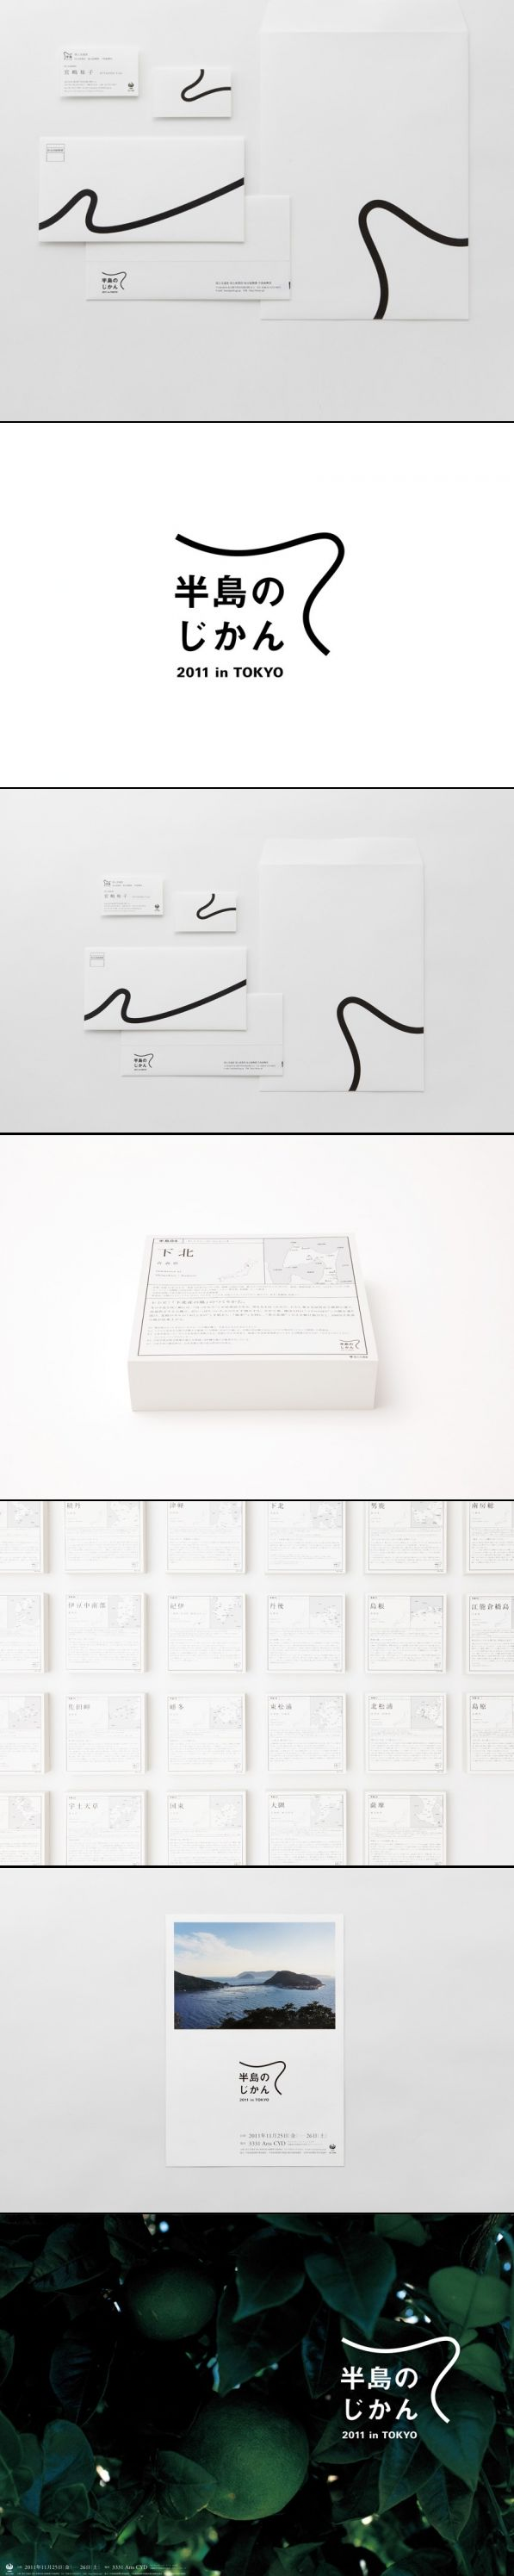 Japanese typographic visual identity design